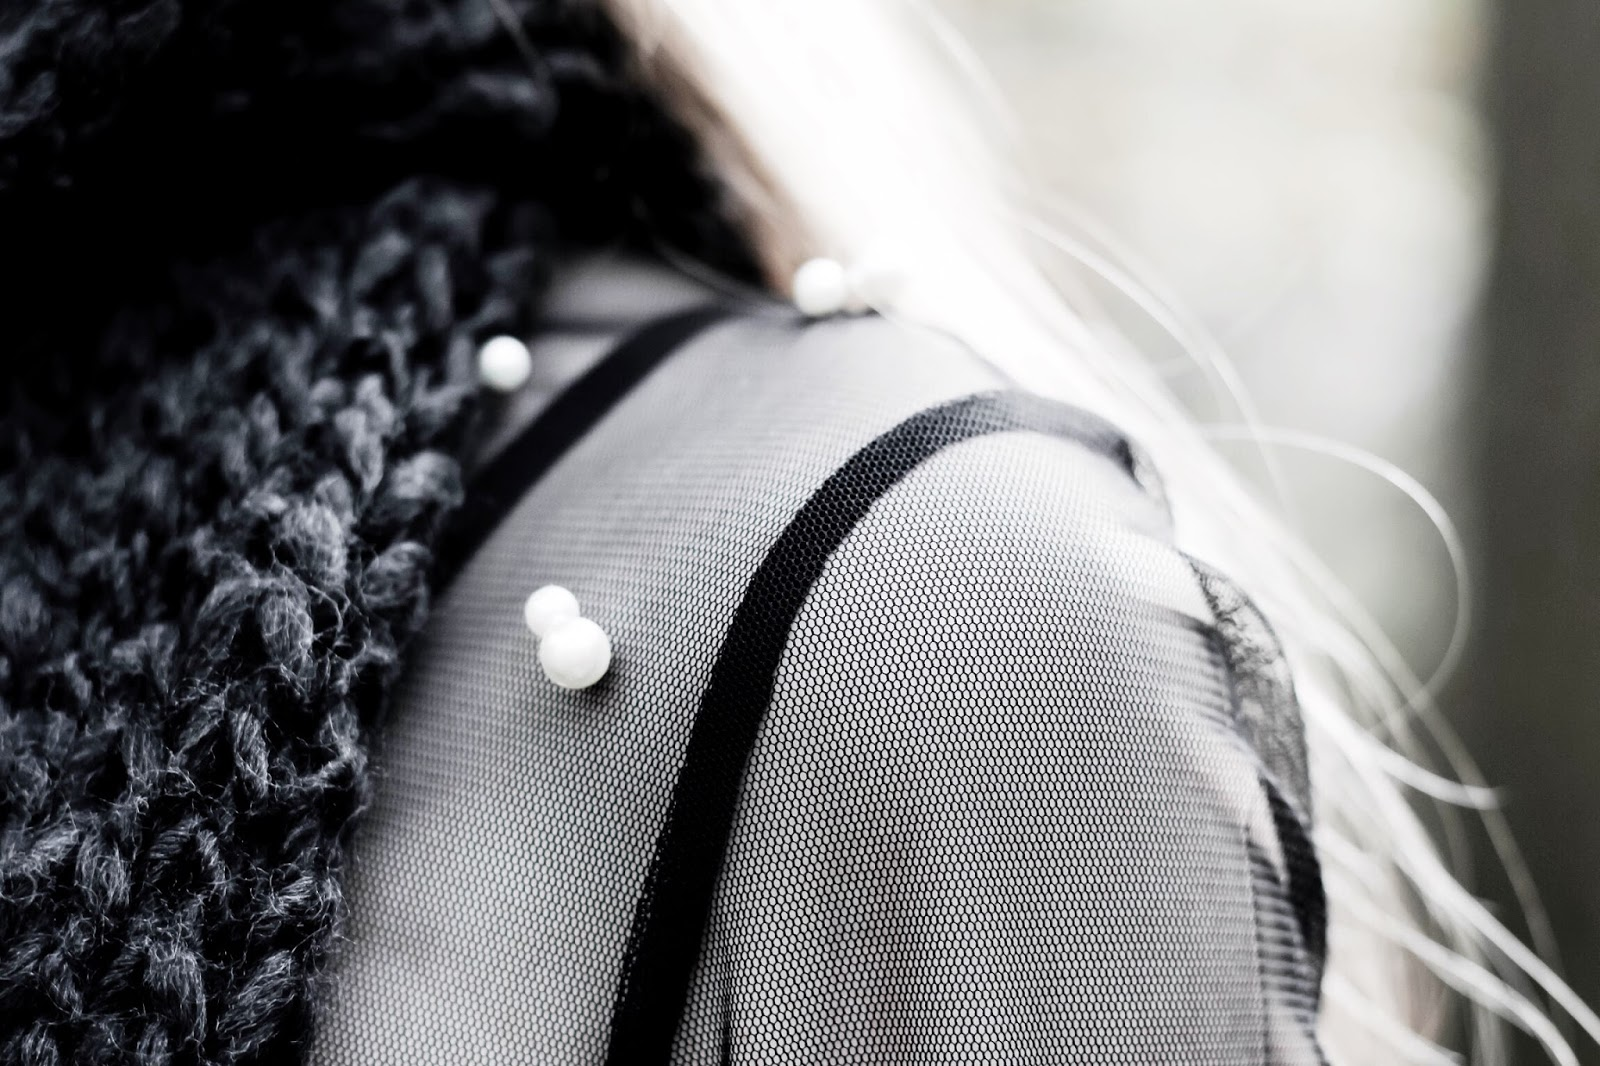 White Pearl Embellishment on Black Netted Dress